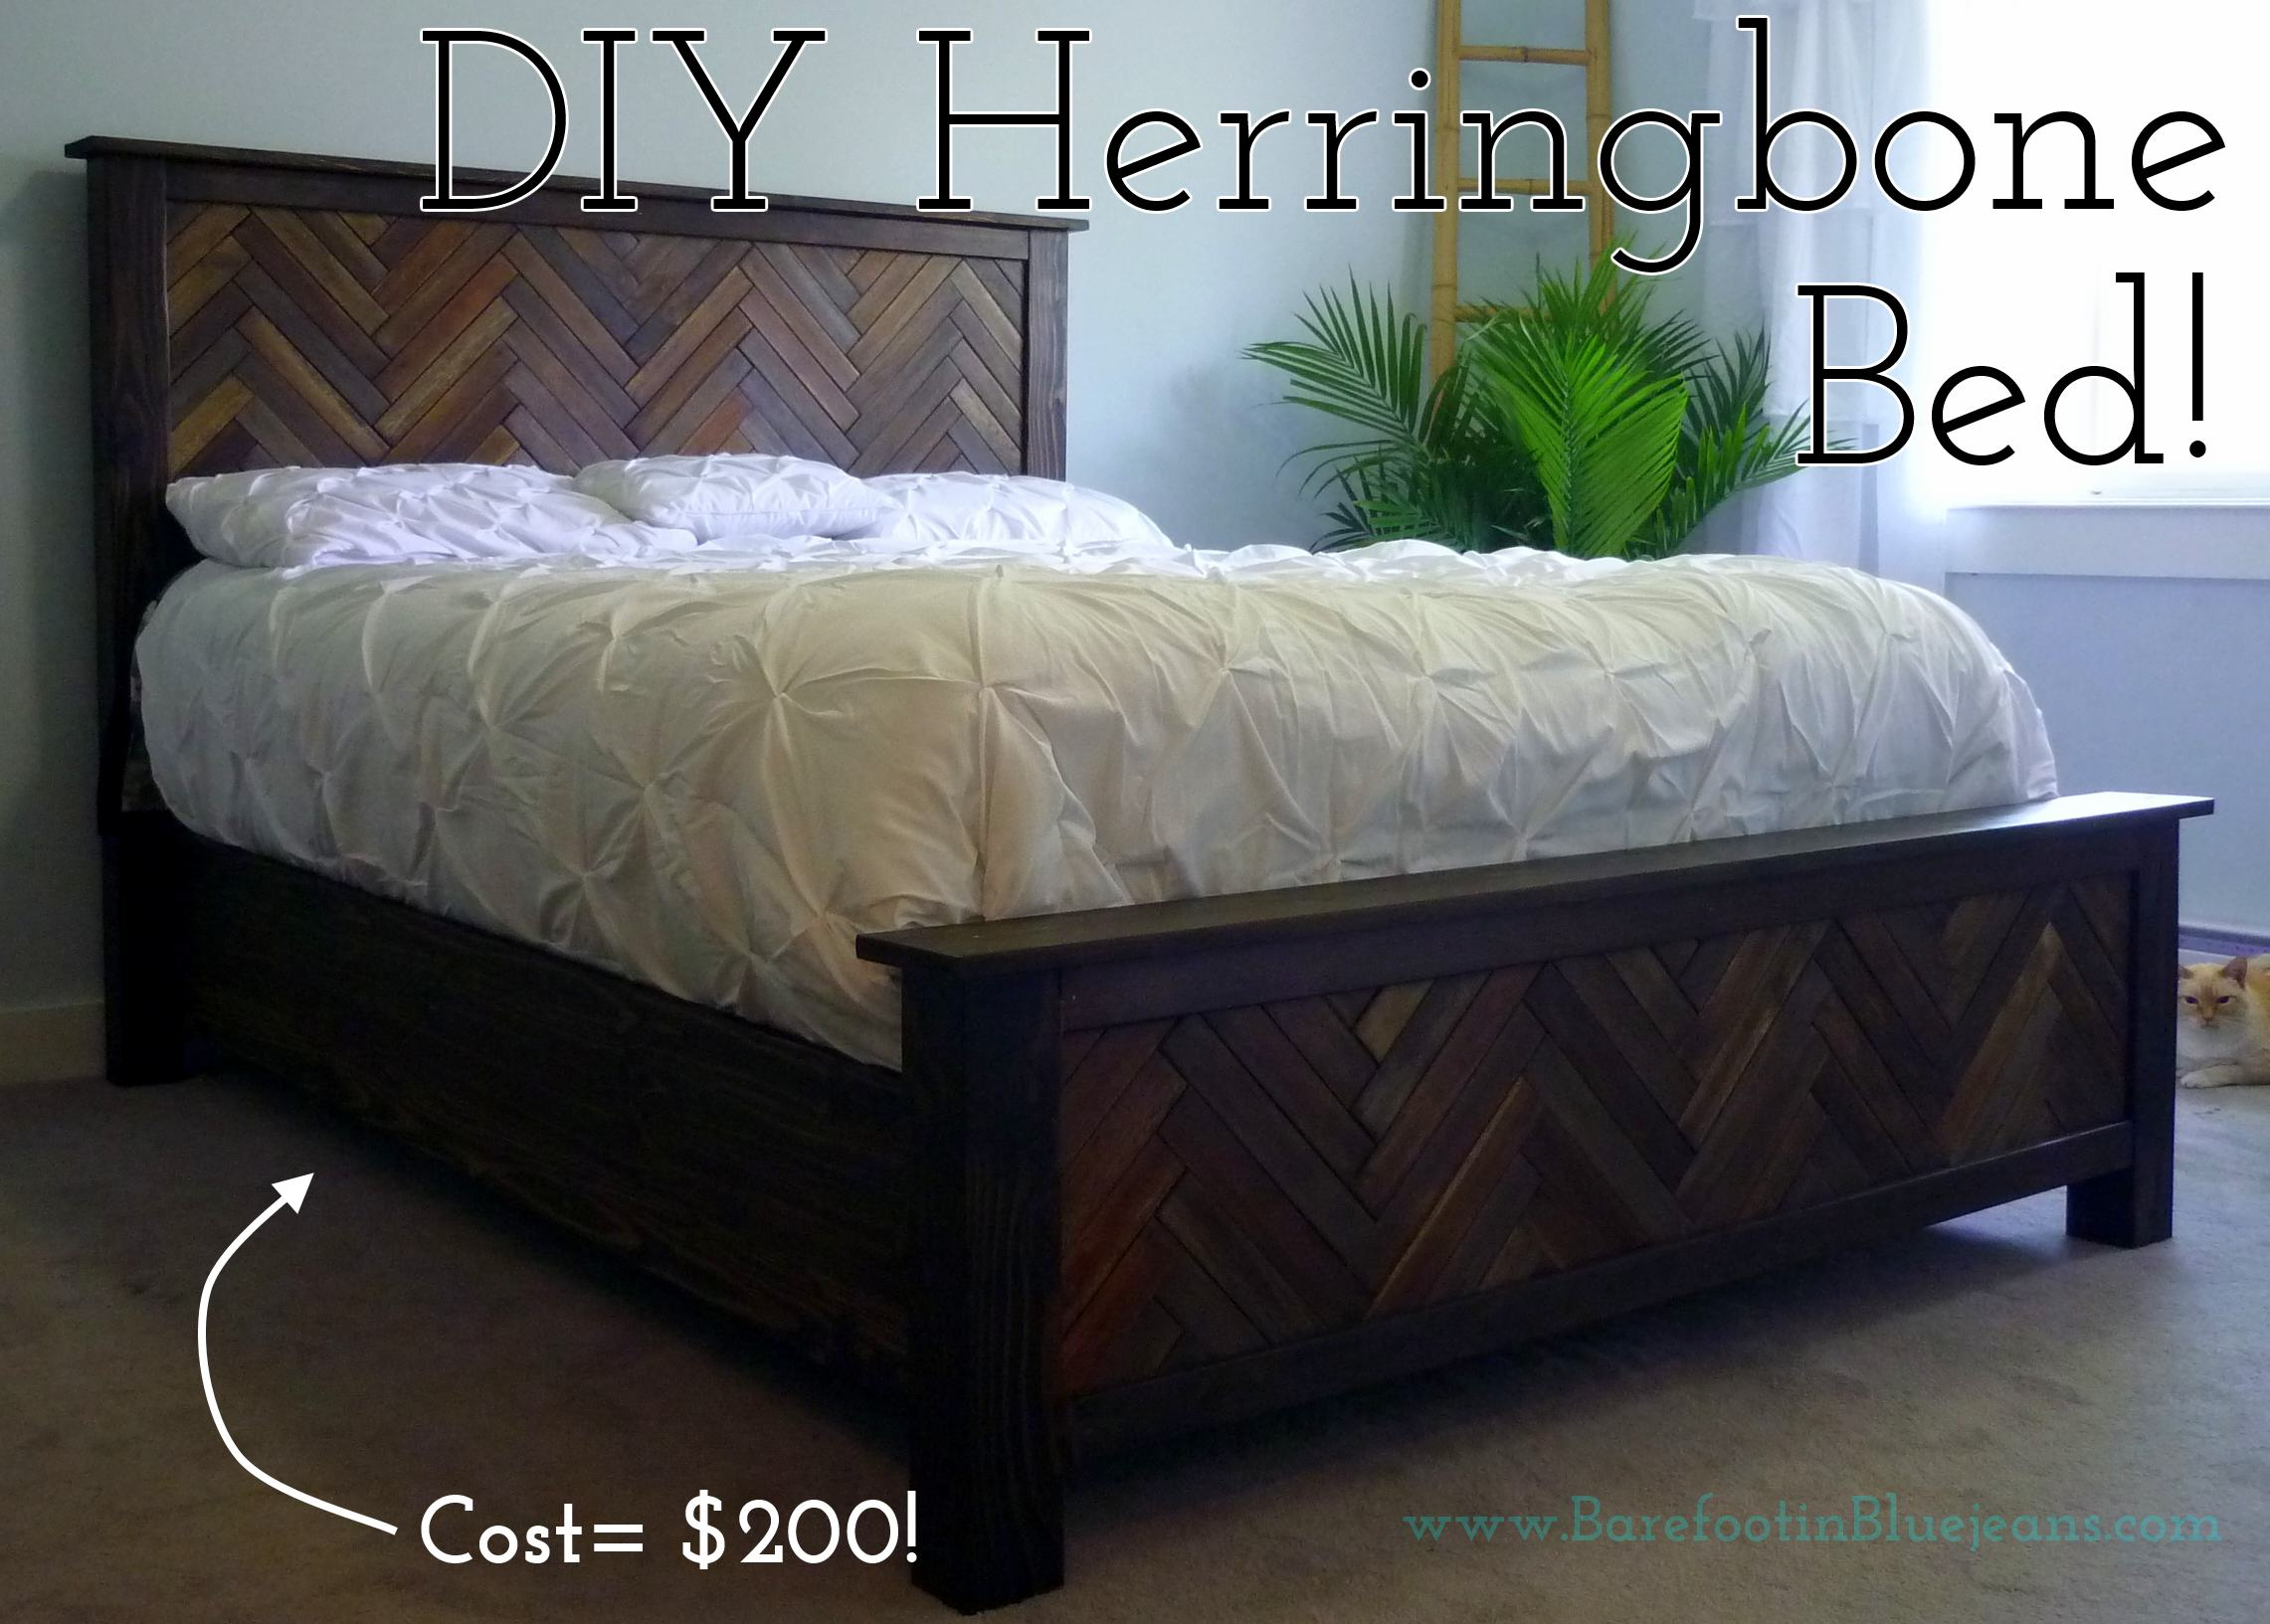 DIY Project How To DIY Herringbone Bed